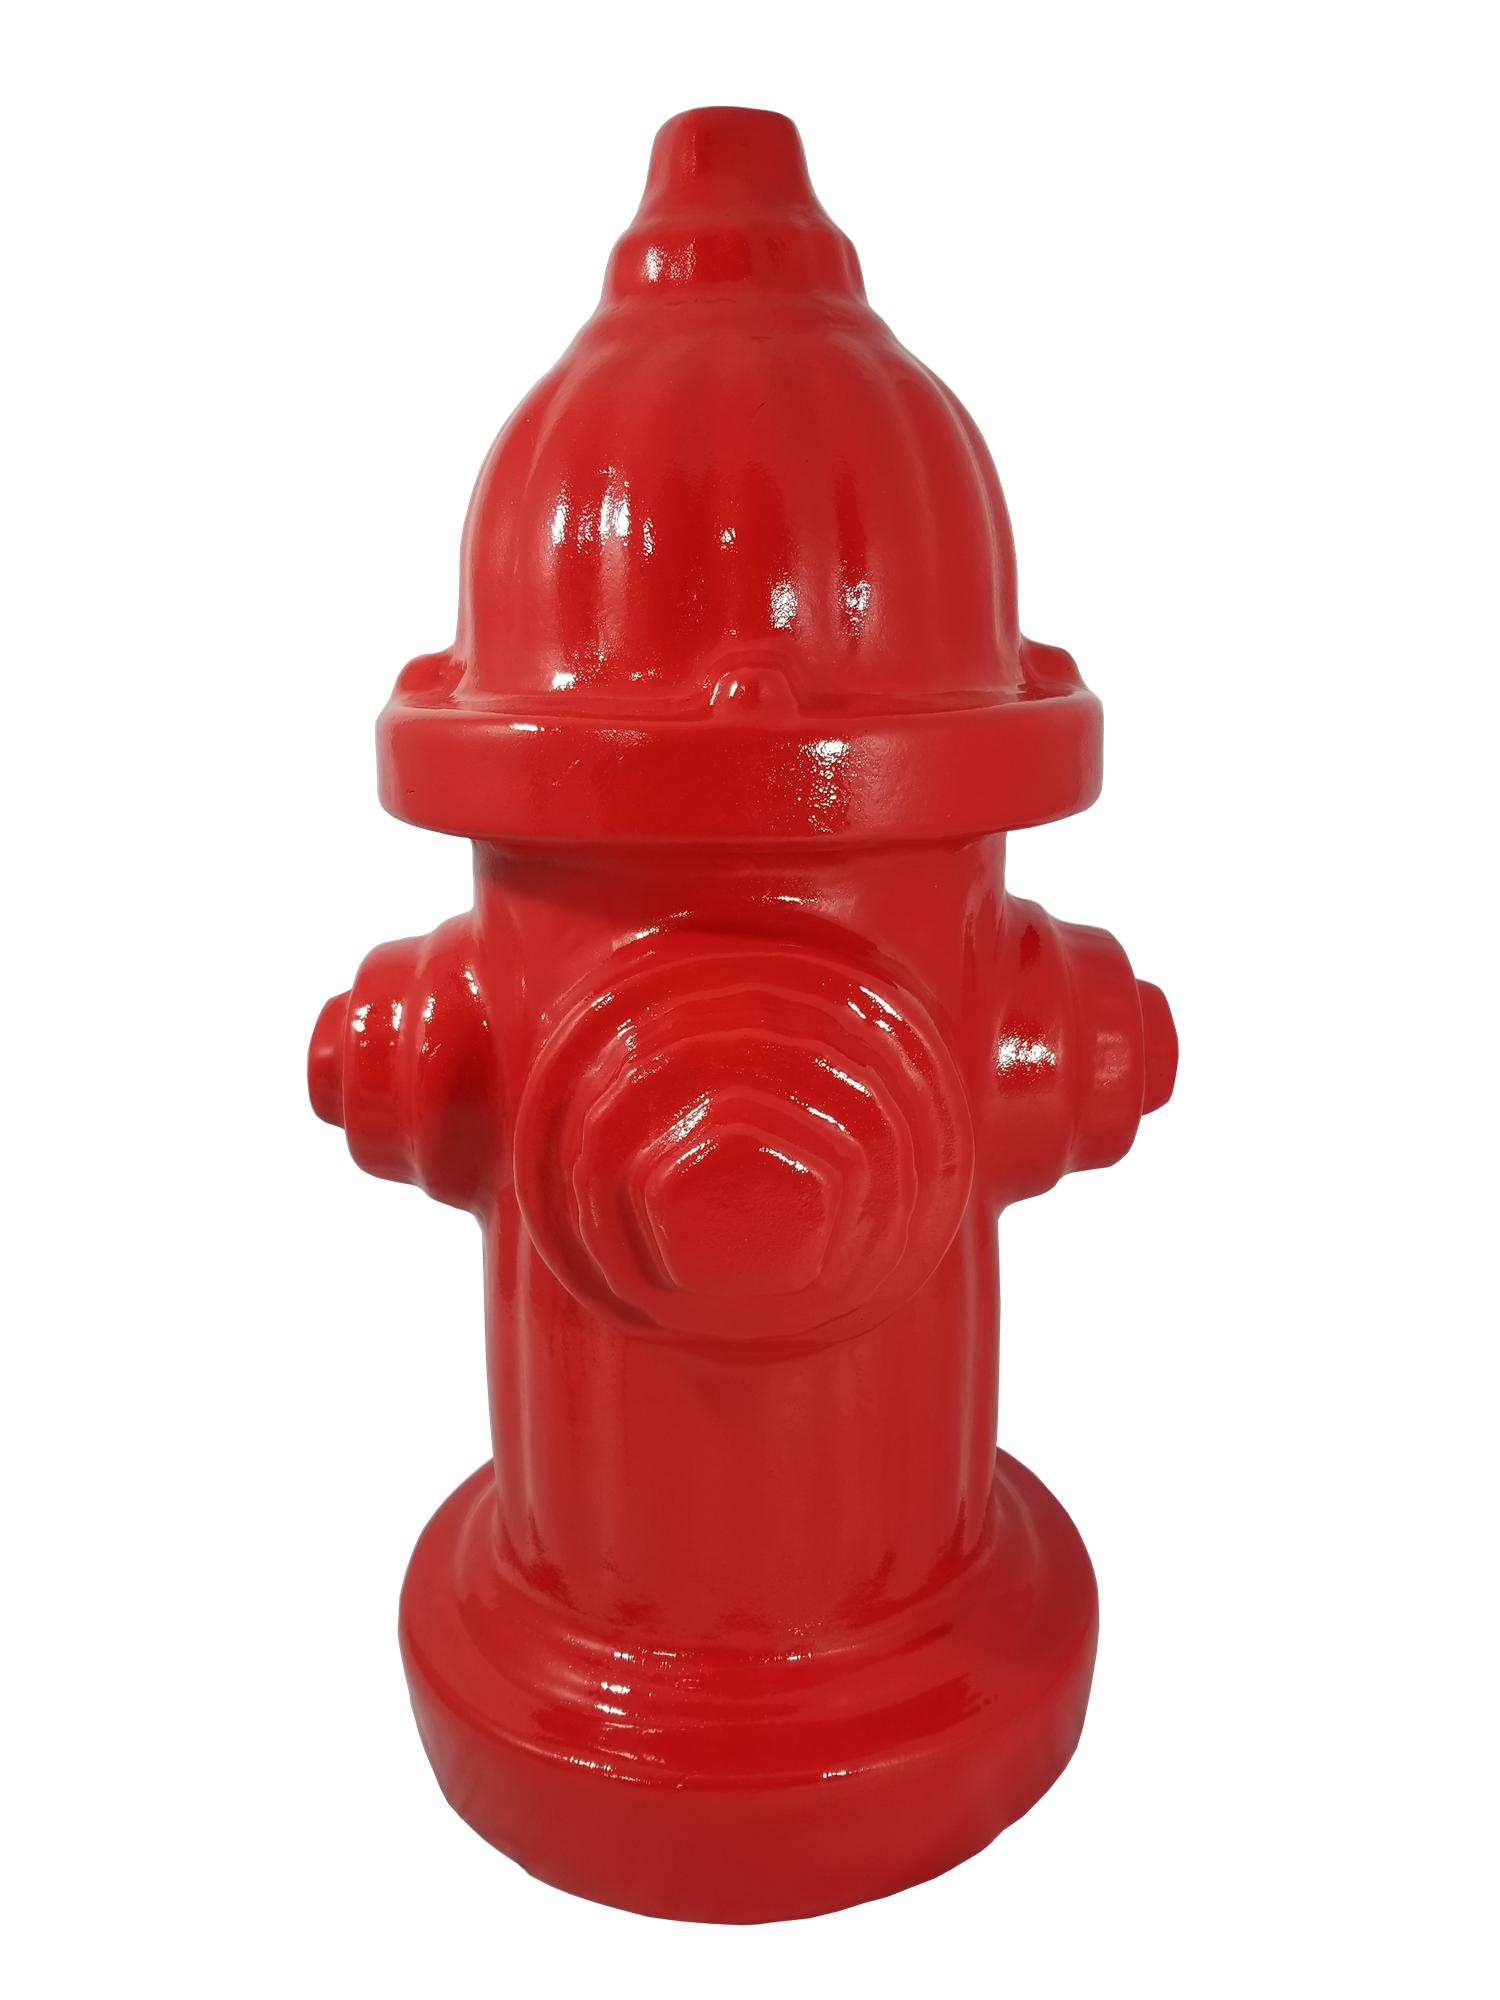 download fire hydrant png file hd hq png image freepngimg fire hydrant png file hd hq png image